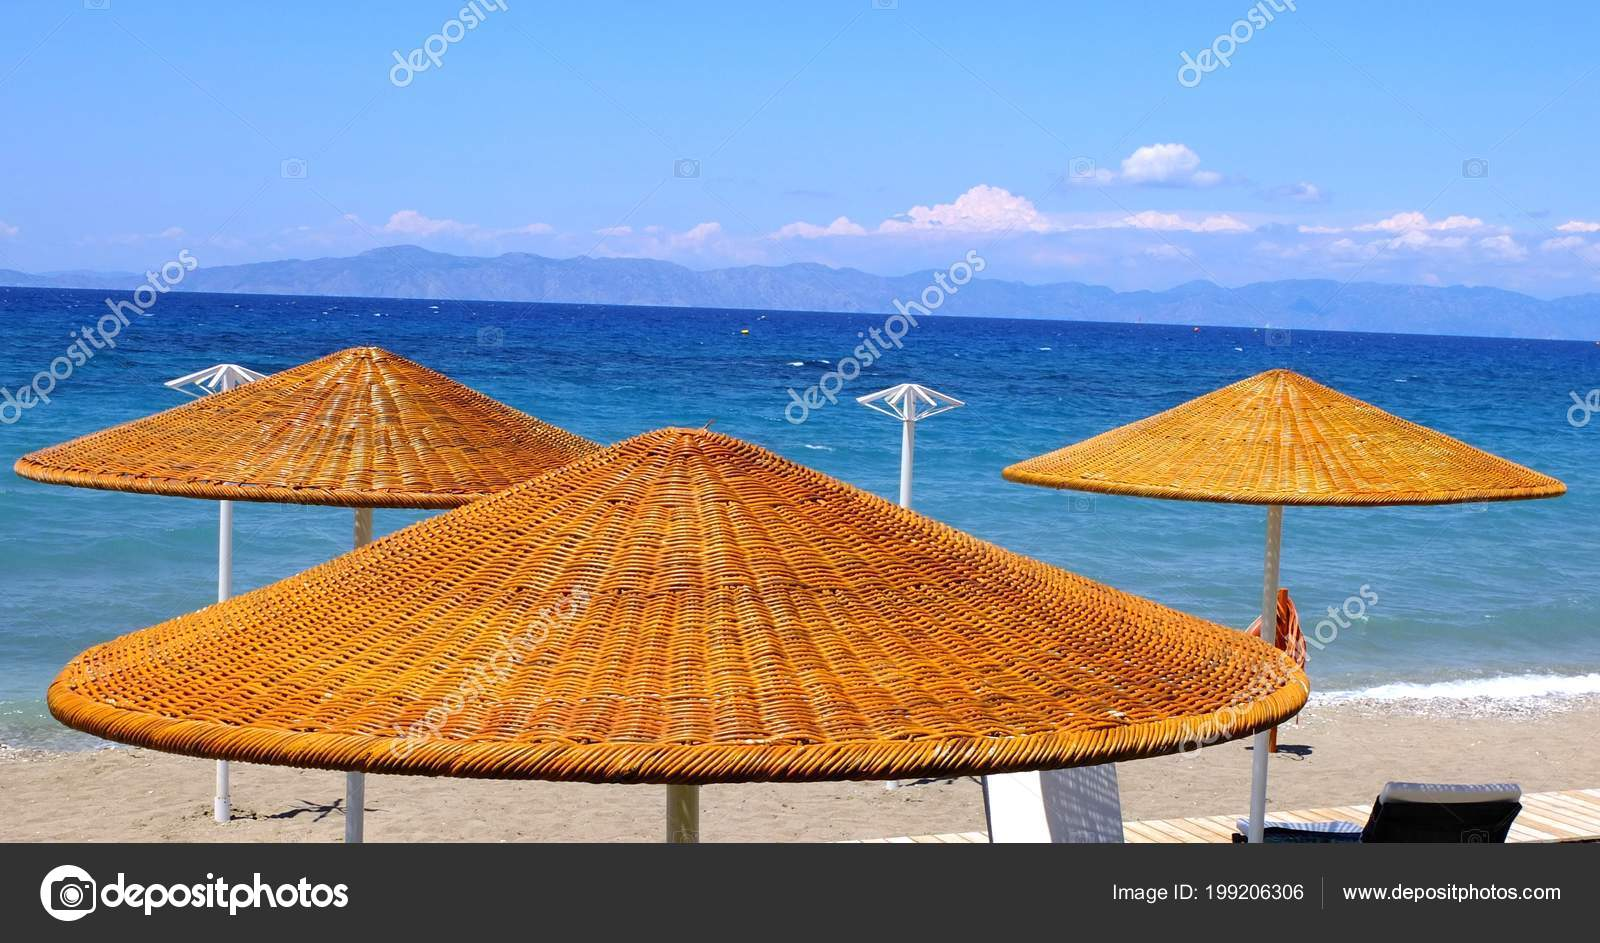 dd1ee01be Sun Umbrellas Woven Twigs Painted Bright Orange Color Stand Beach — Stock  Photo